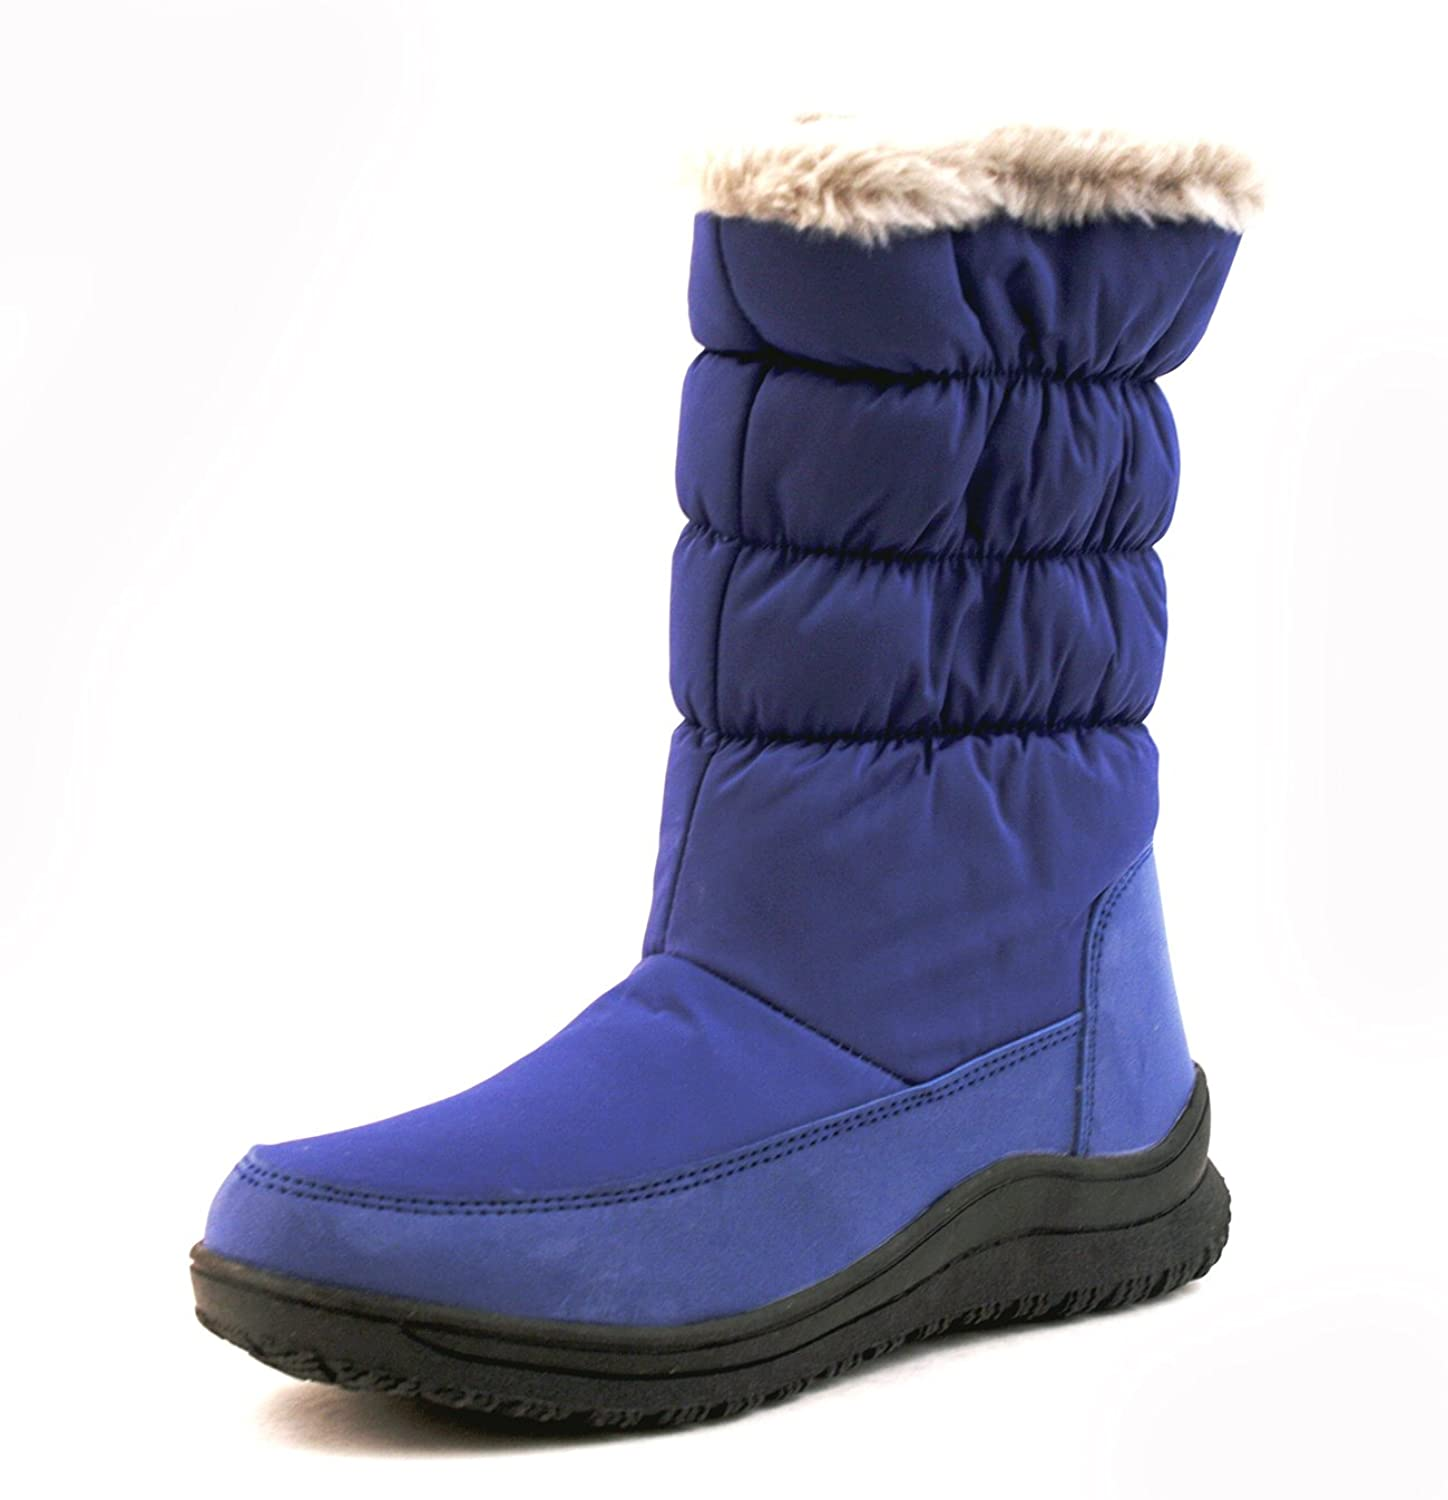 Luckers Women's Blue Snow Boots